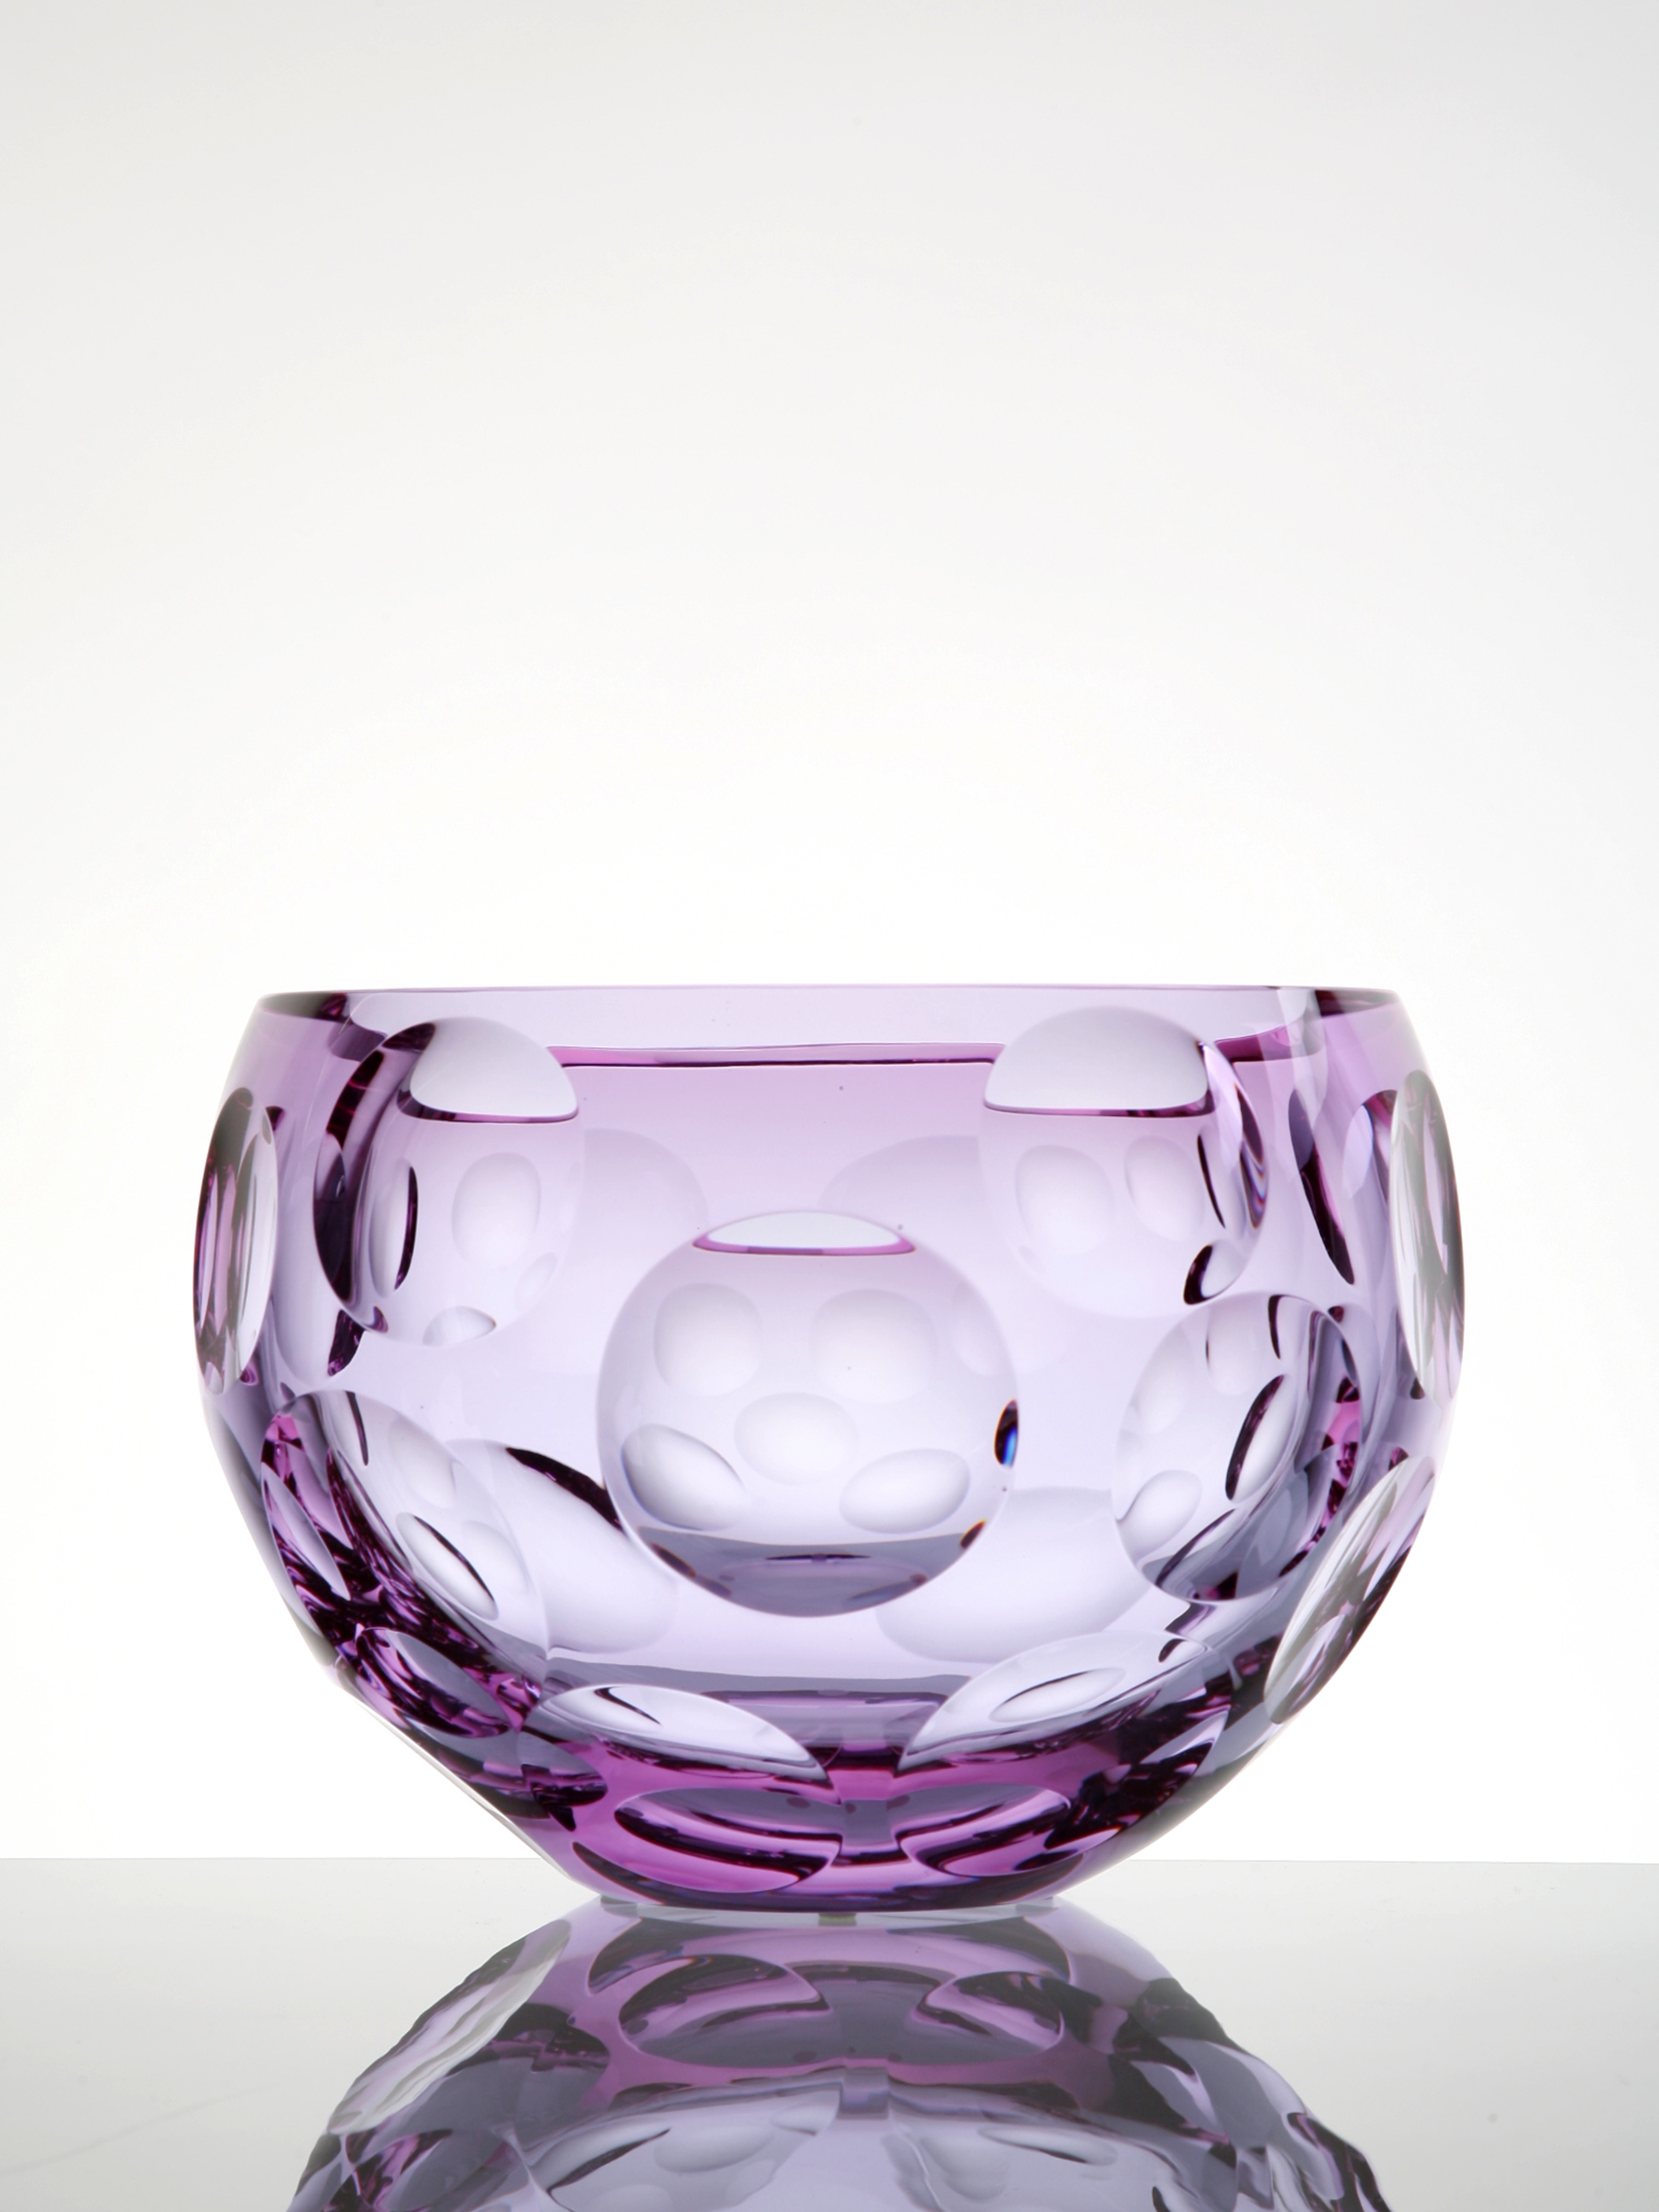 Bubbles Bowl, Underlay vase in Alexandrite and Rose